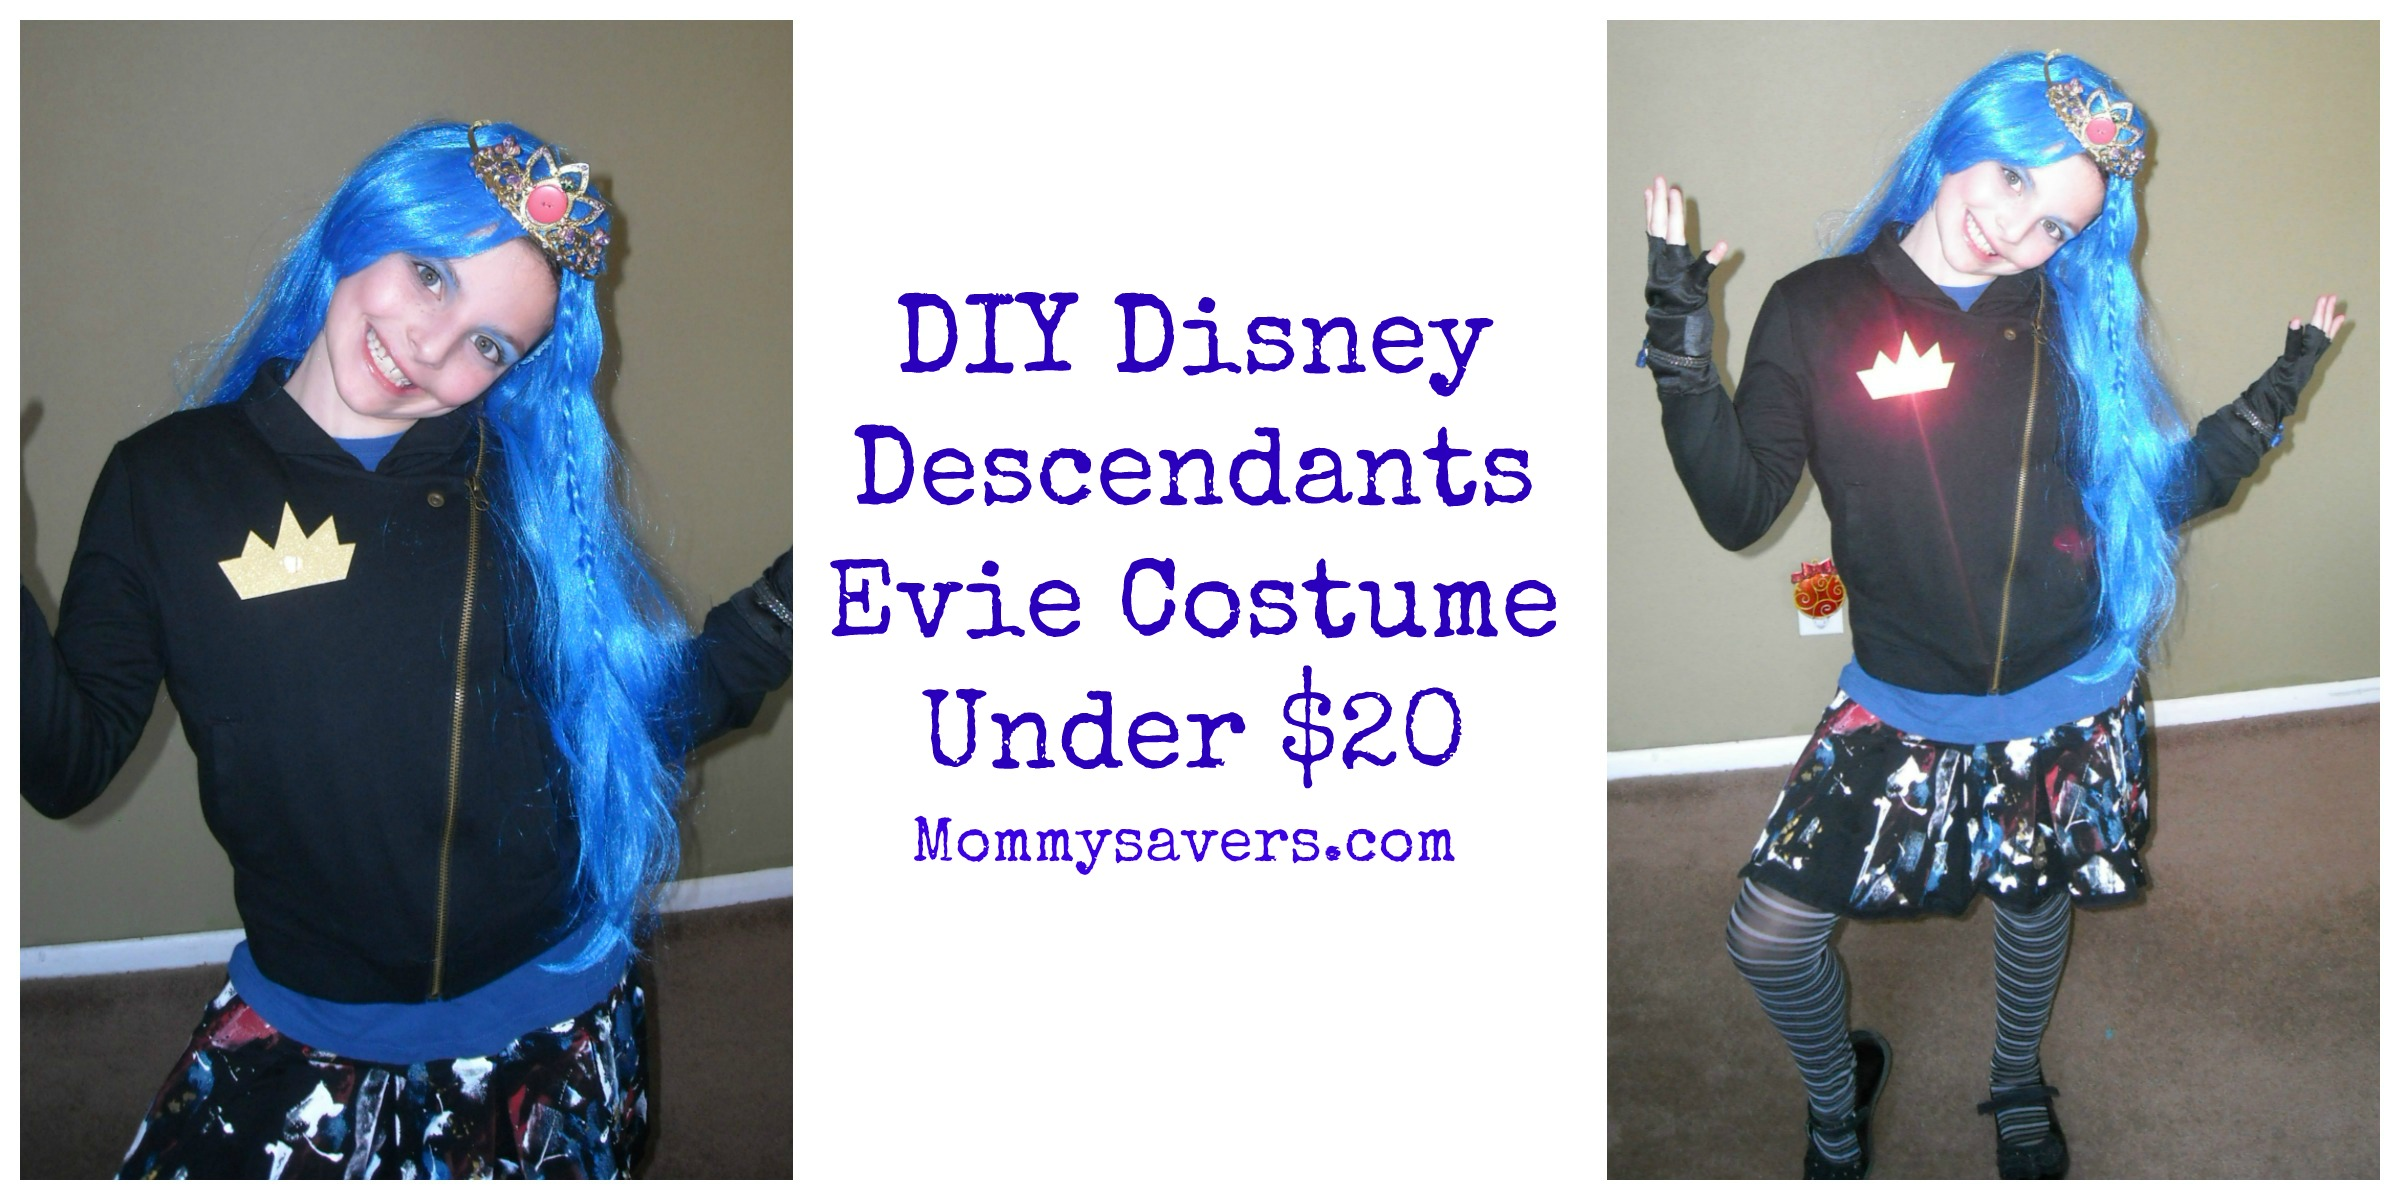 diy disney descendants evie costume under $20 - mommysavers